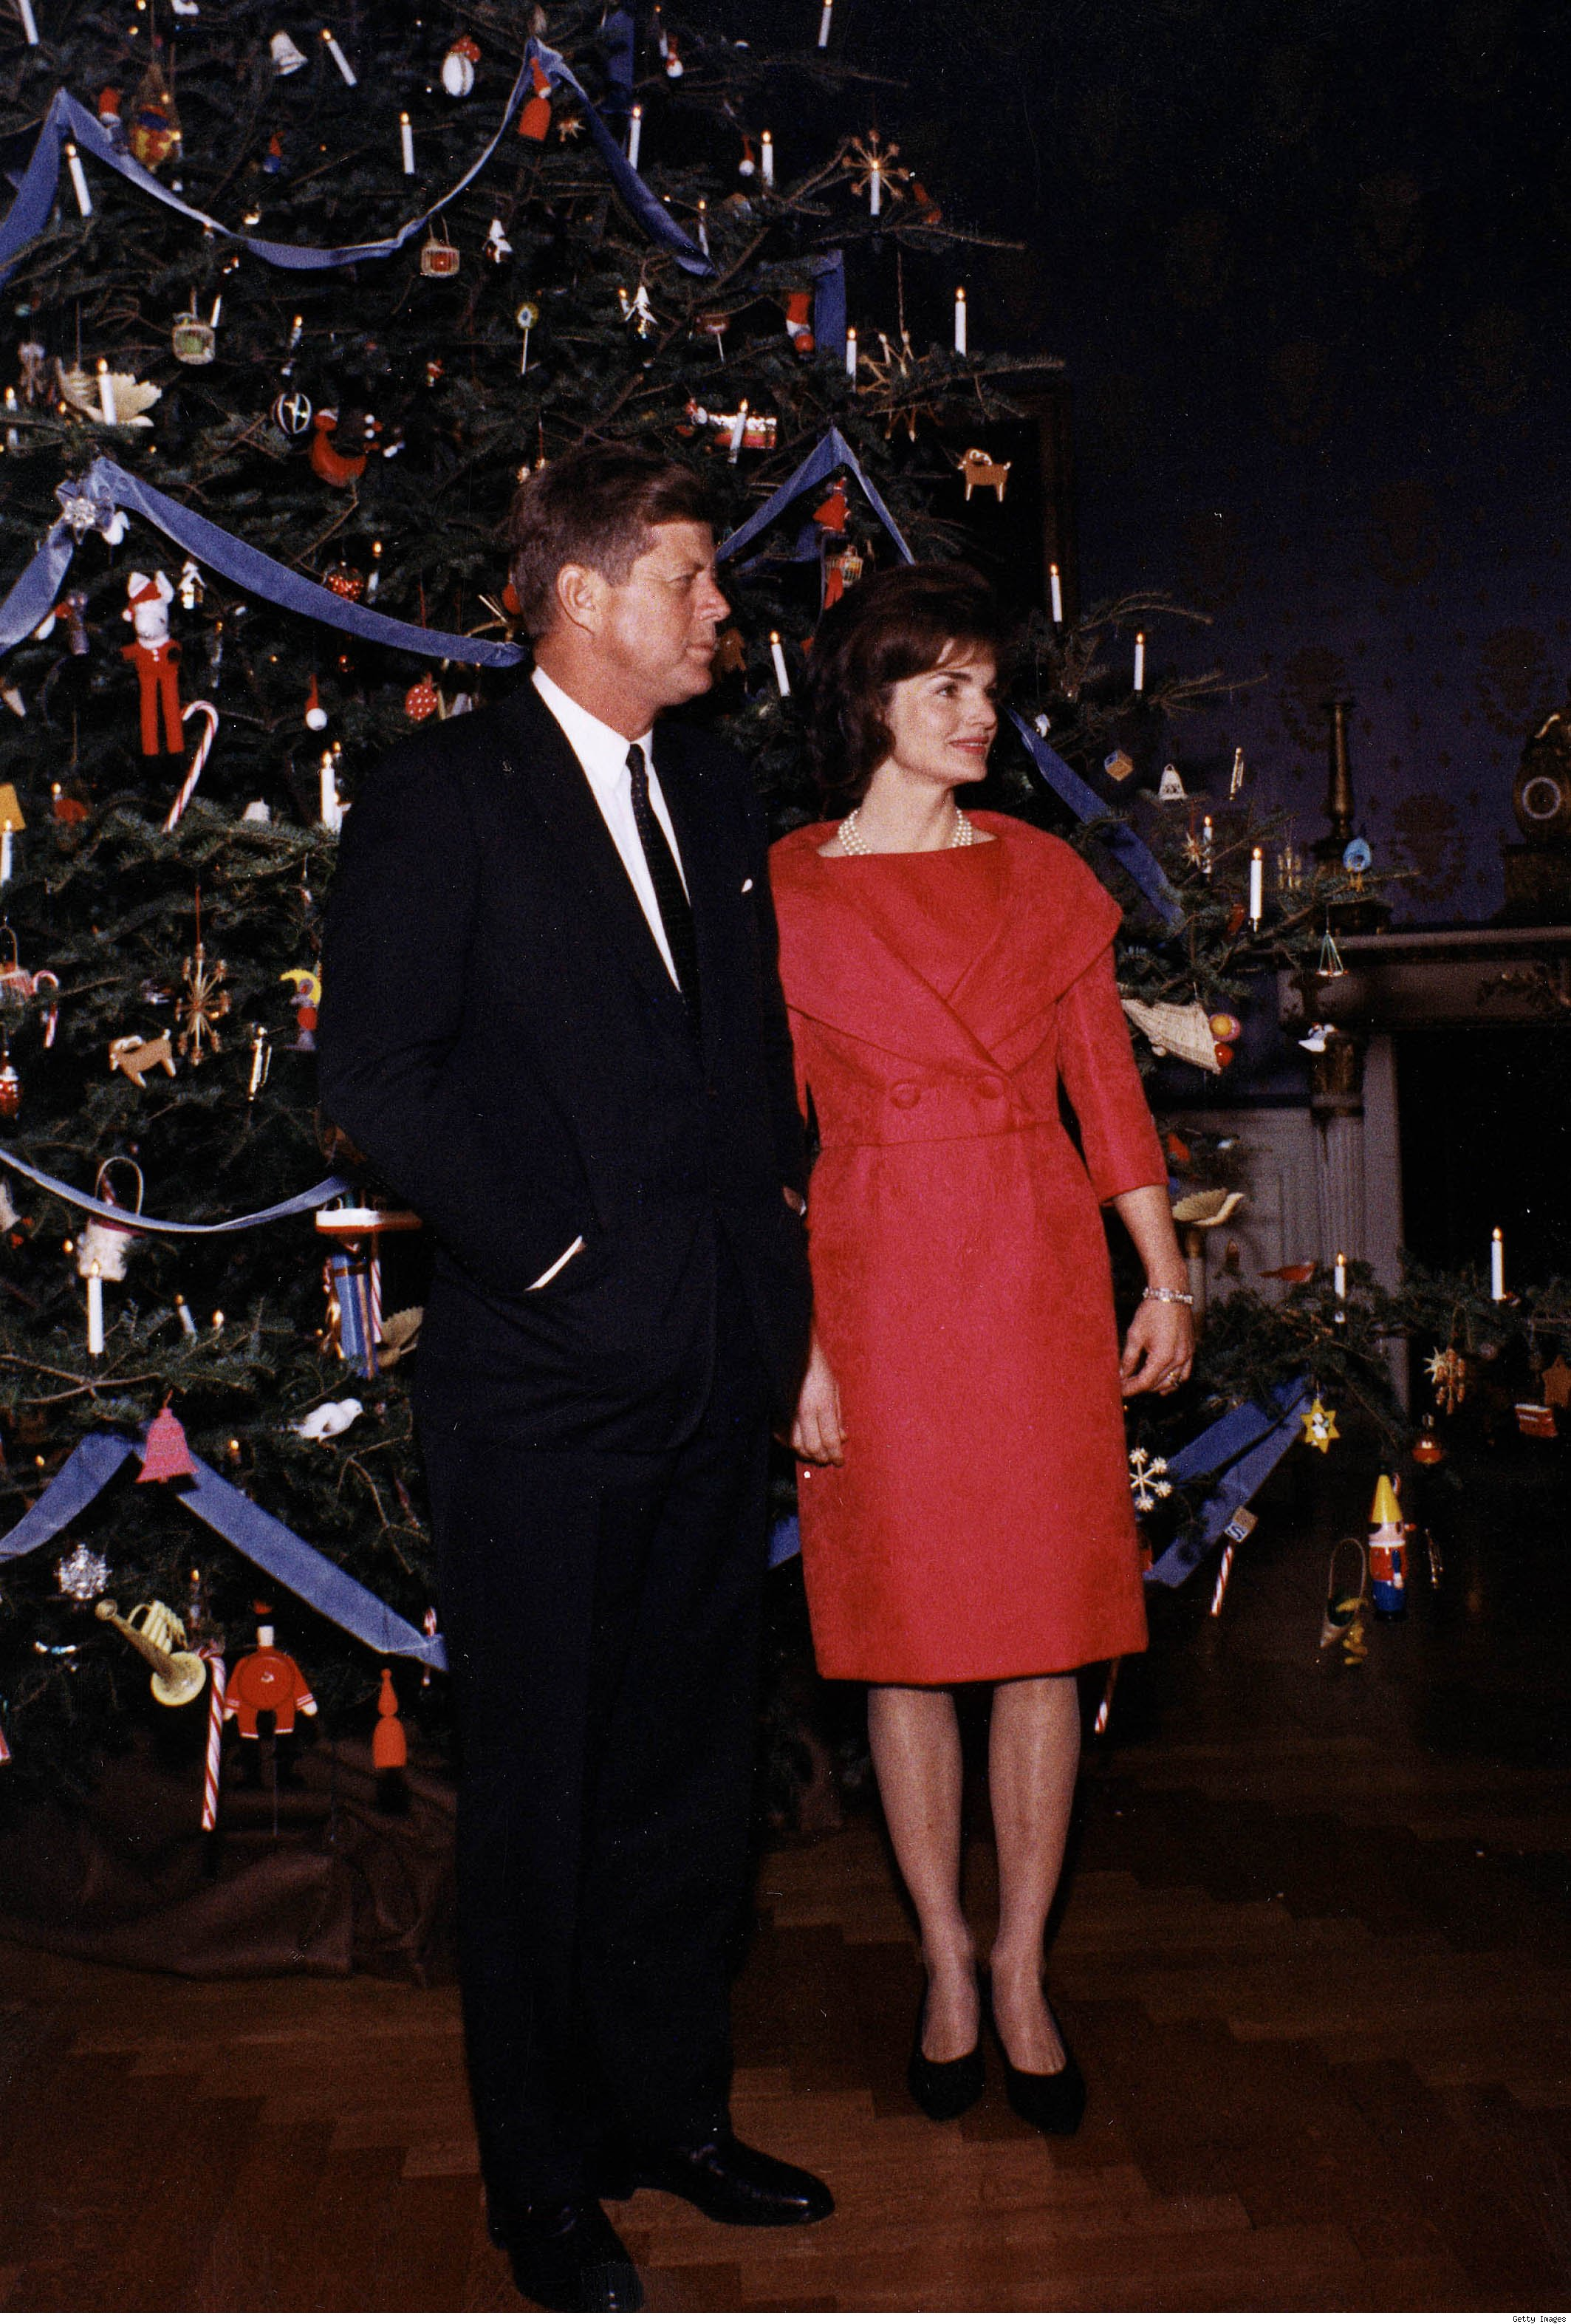 The Kennedy White House Christmas Tree